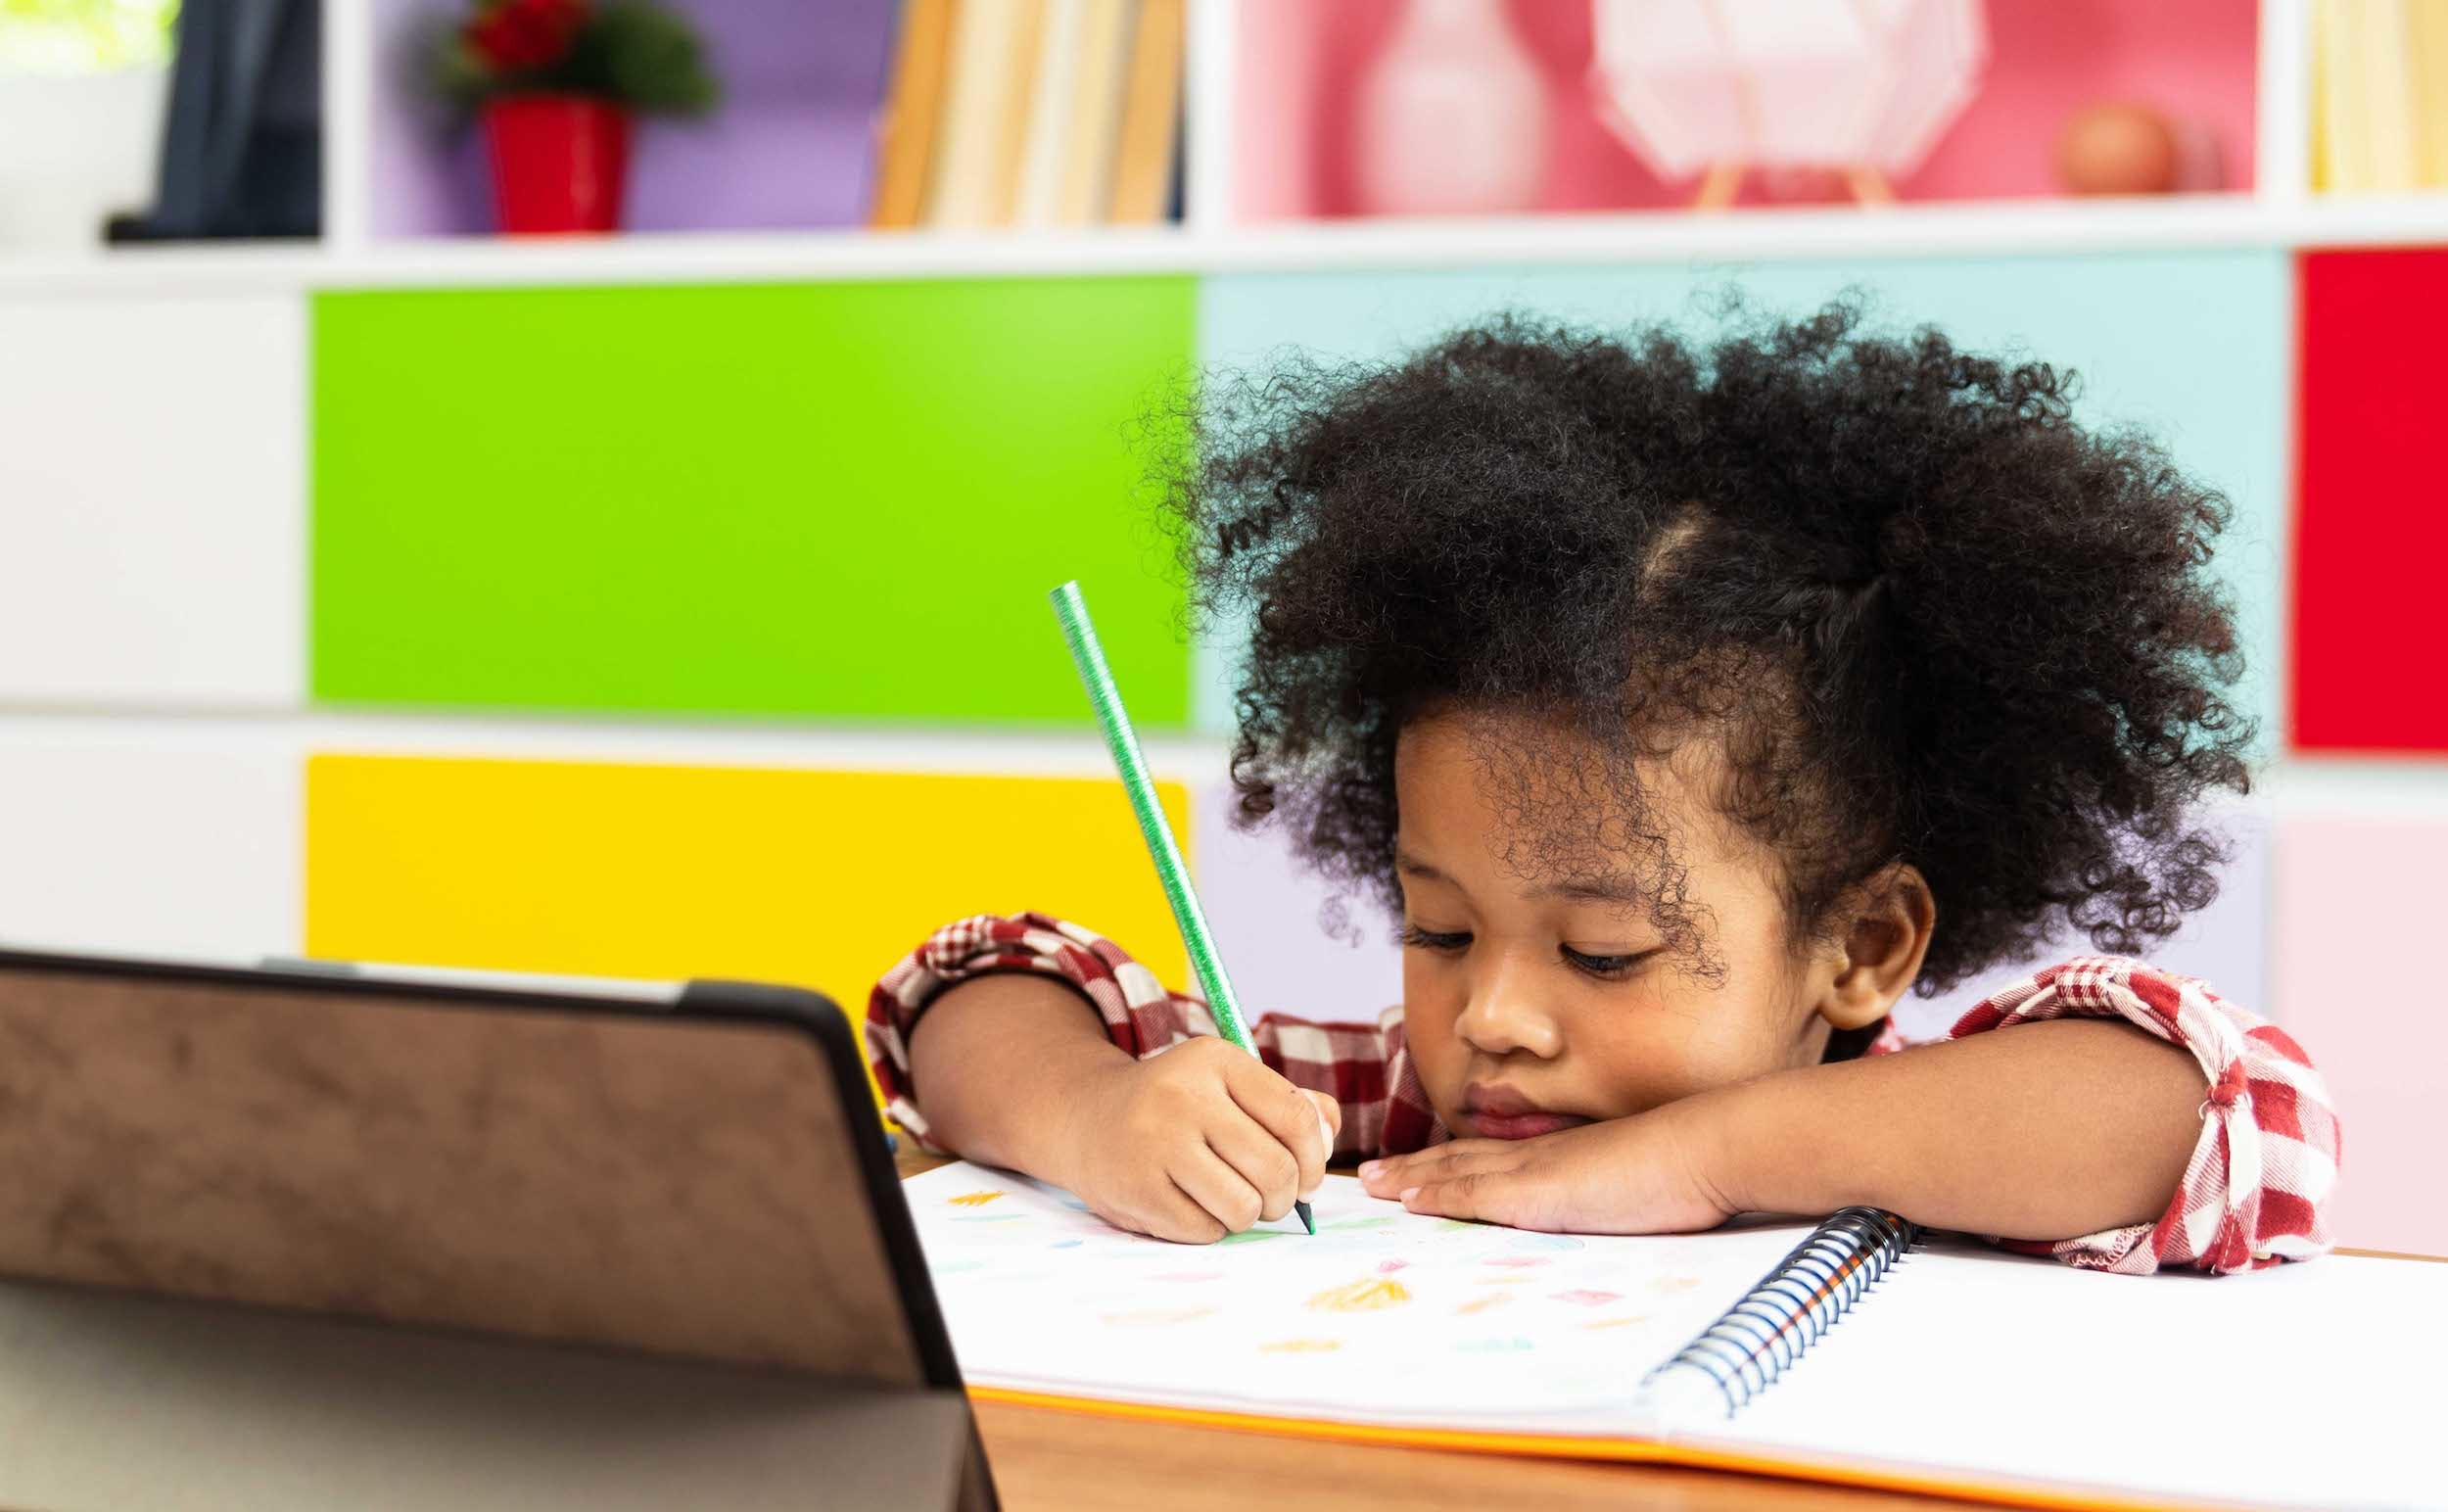 NYC schools assigns independent learning days: Here's how to keep kids occupied